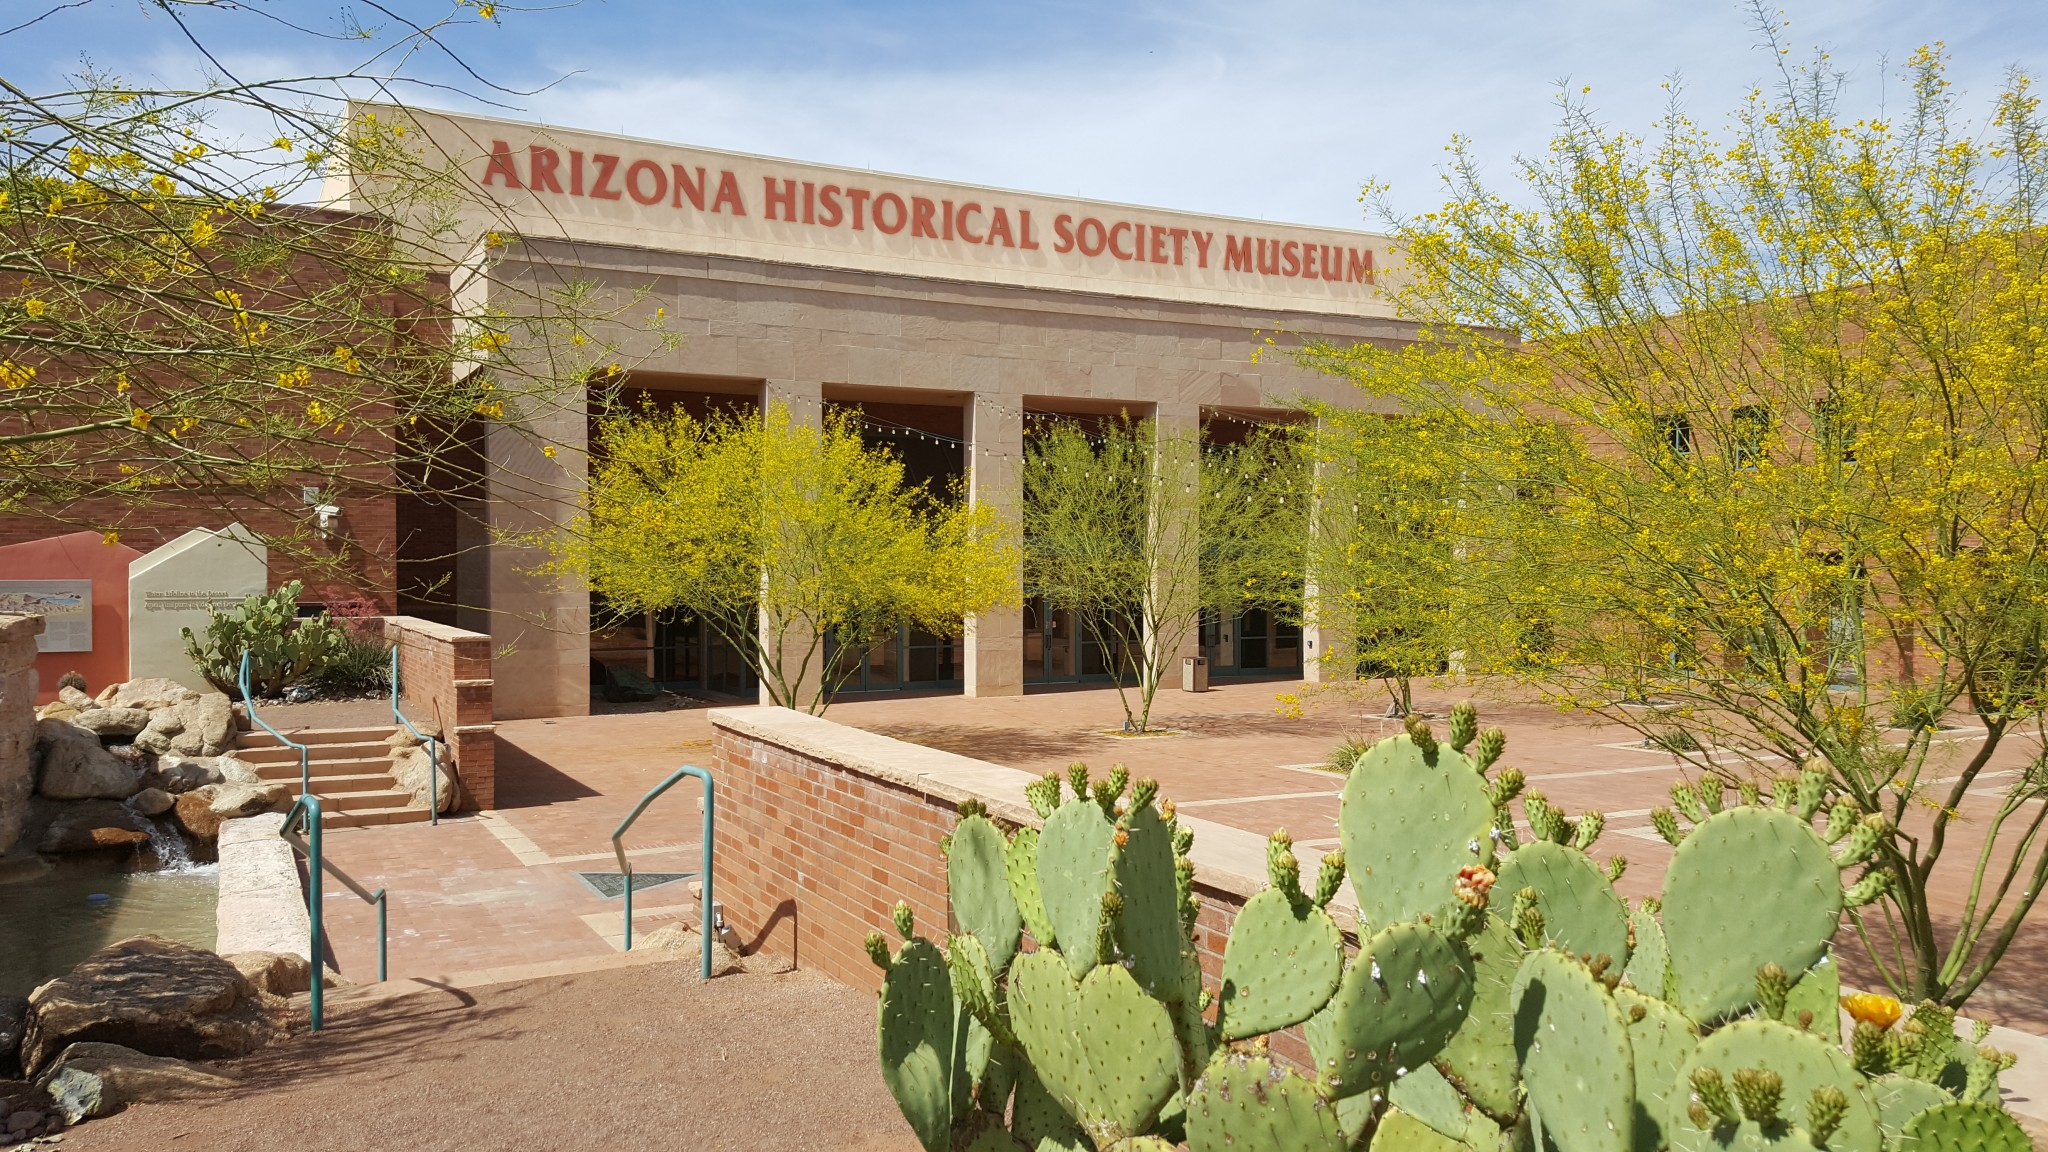 The AZ Heritage Center at Papago Park feaures the Centennial Museum and space for weddings and other events.